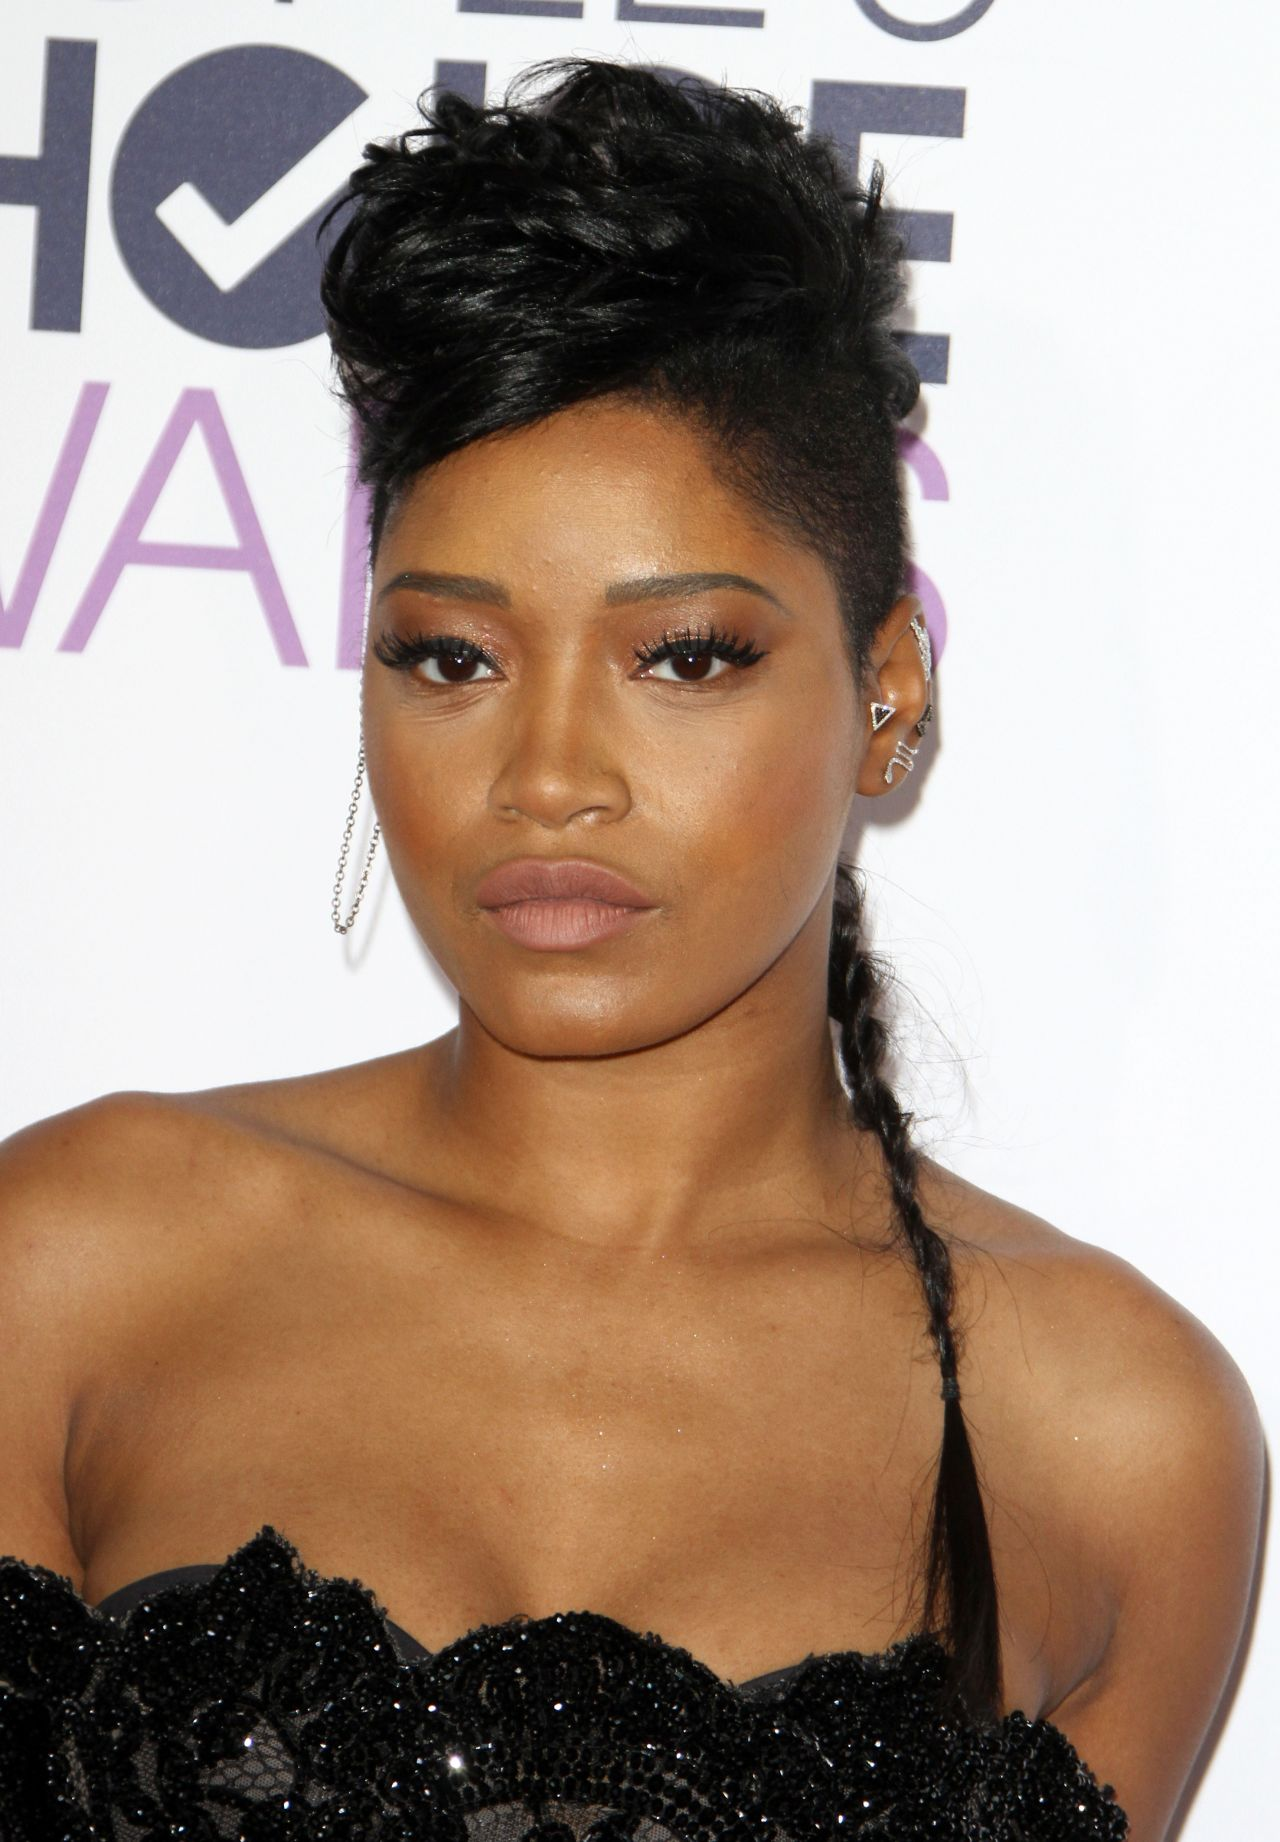 keke-palmer-2016-people-s-choice-awards-in-microsoft-theater-in-los-angeles-3